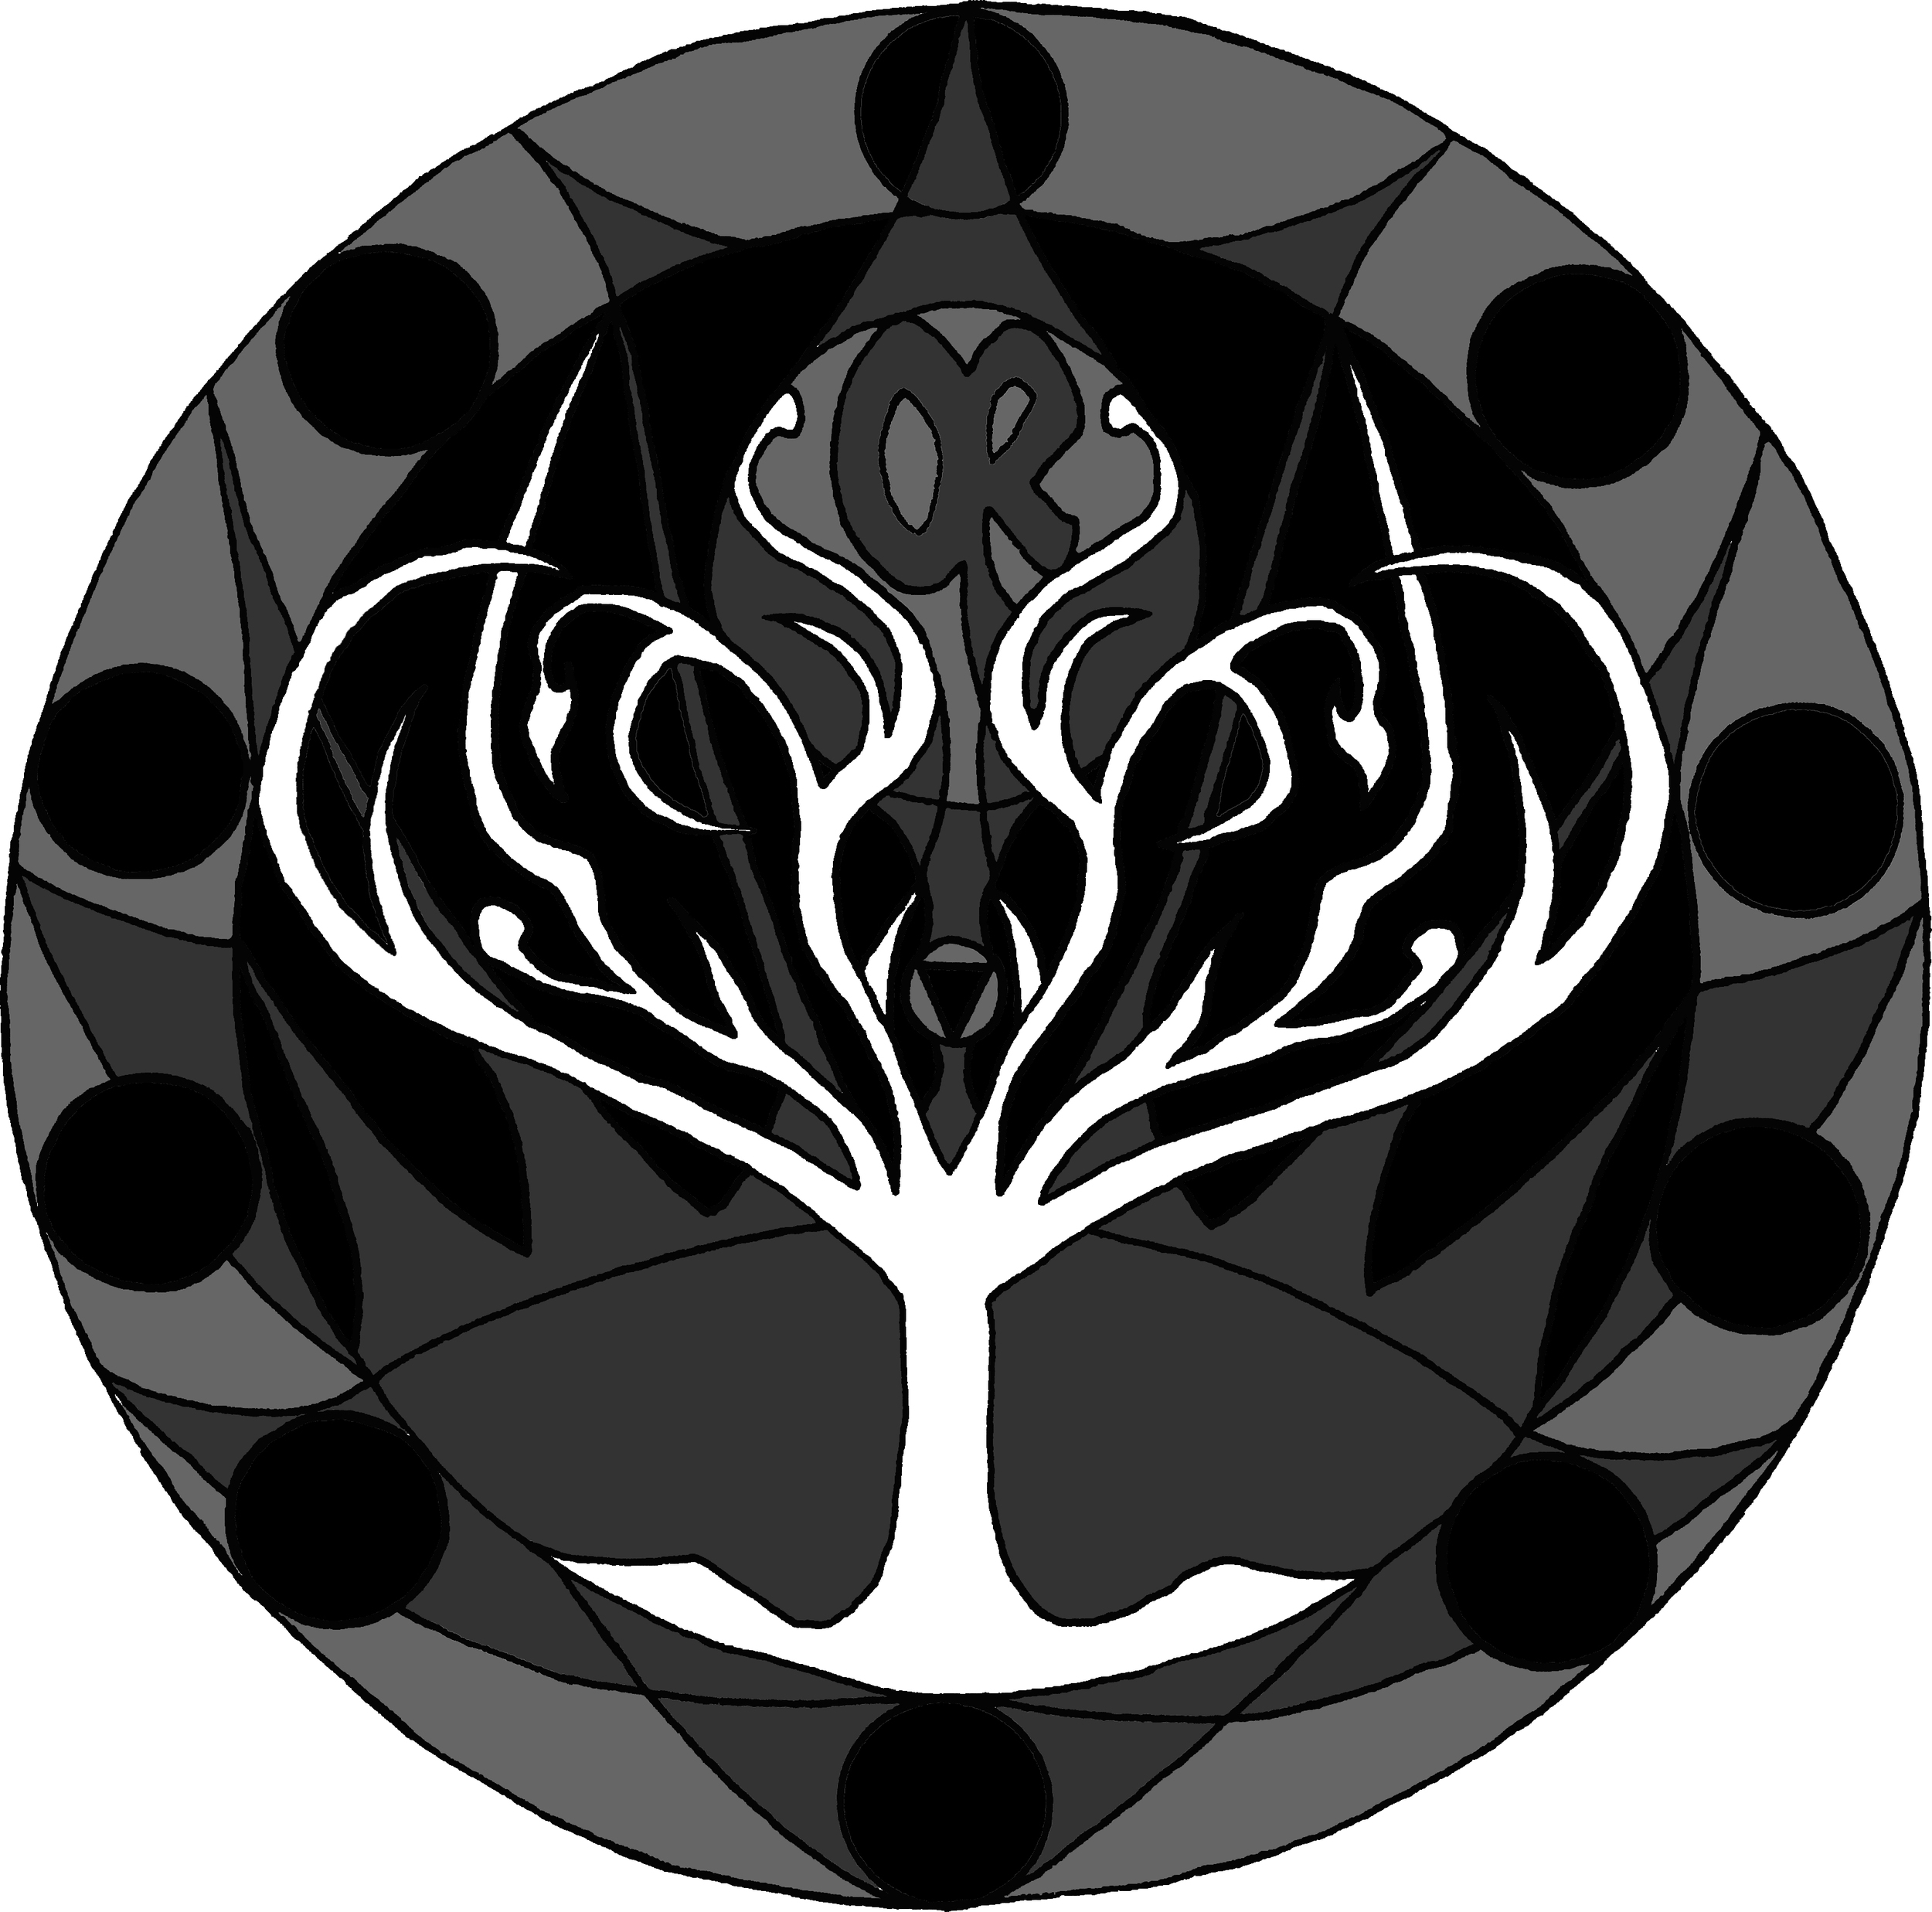 GRAYSCALE COLORIZATION OF ORACLE REPORT LOGO-MANDALA BY WISE OWL SZABI